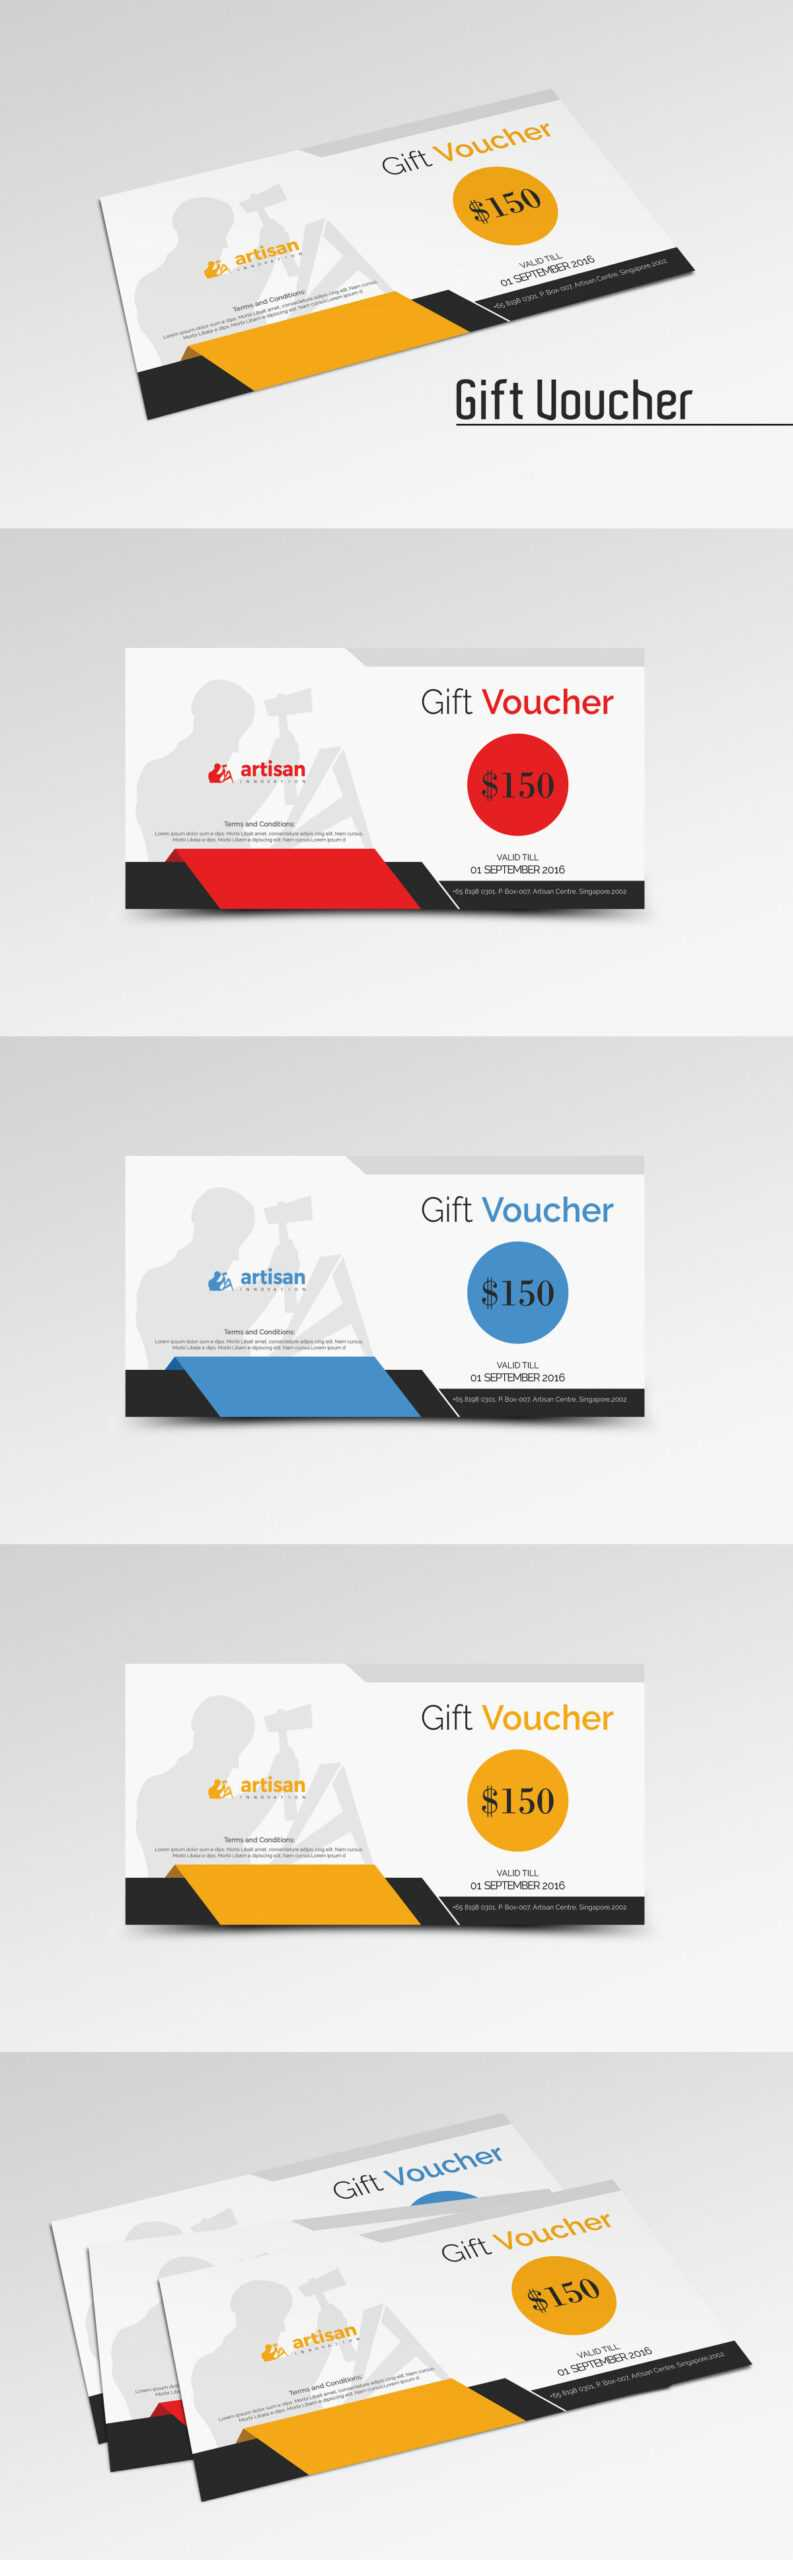 Gift Voucher Template Ai, Eps, Psd | Gift Voucher Design within Gift Card Template Illustrator